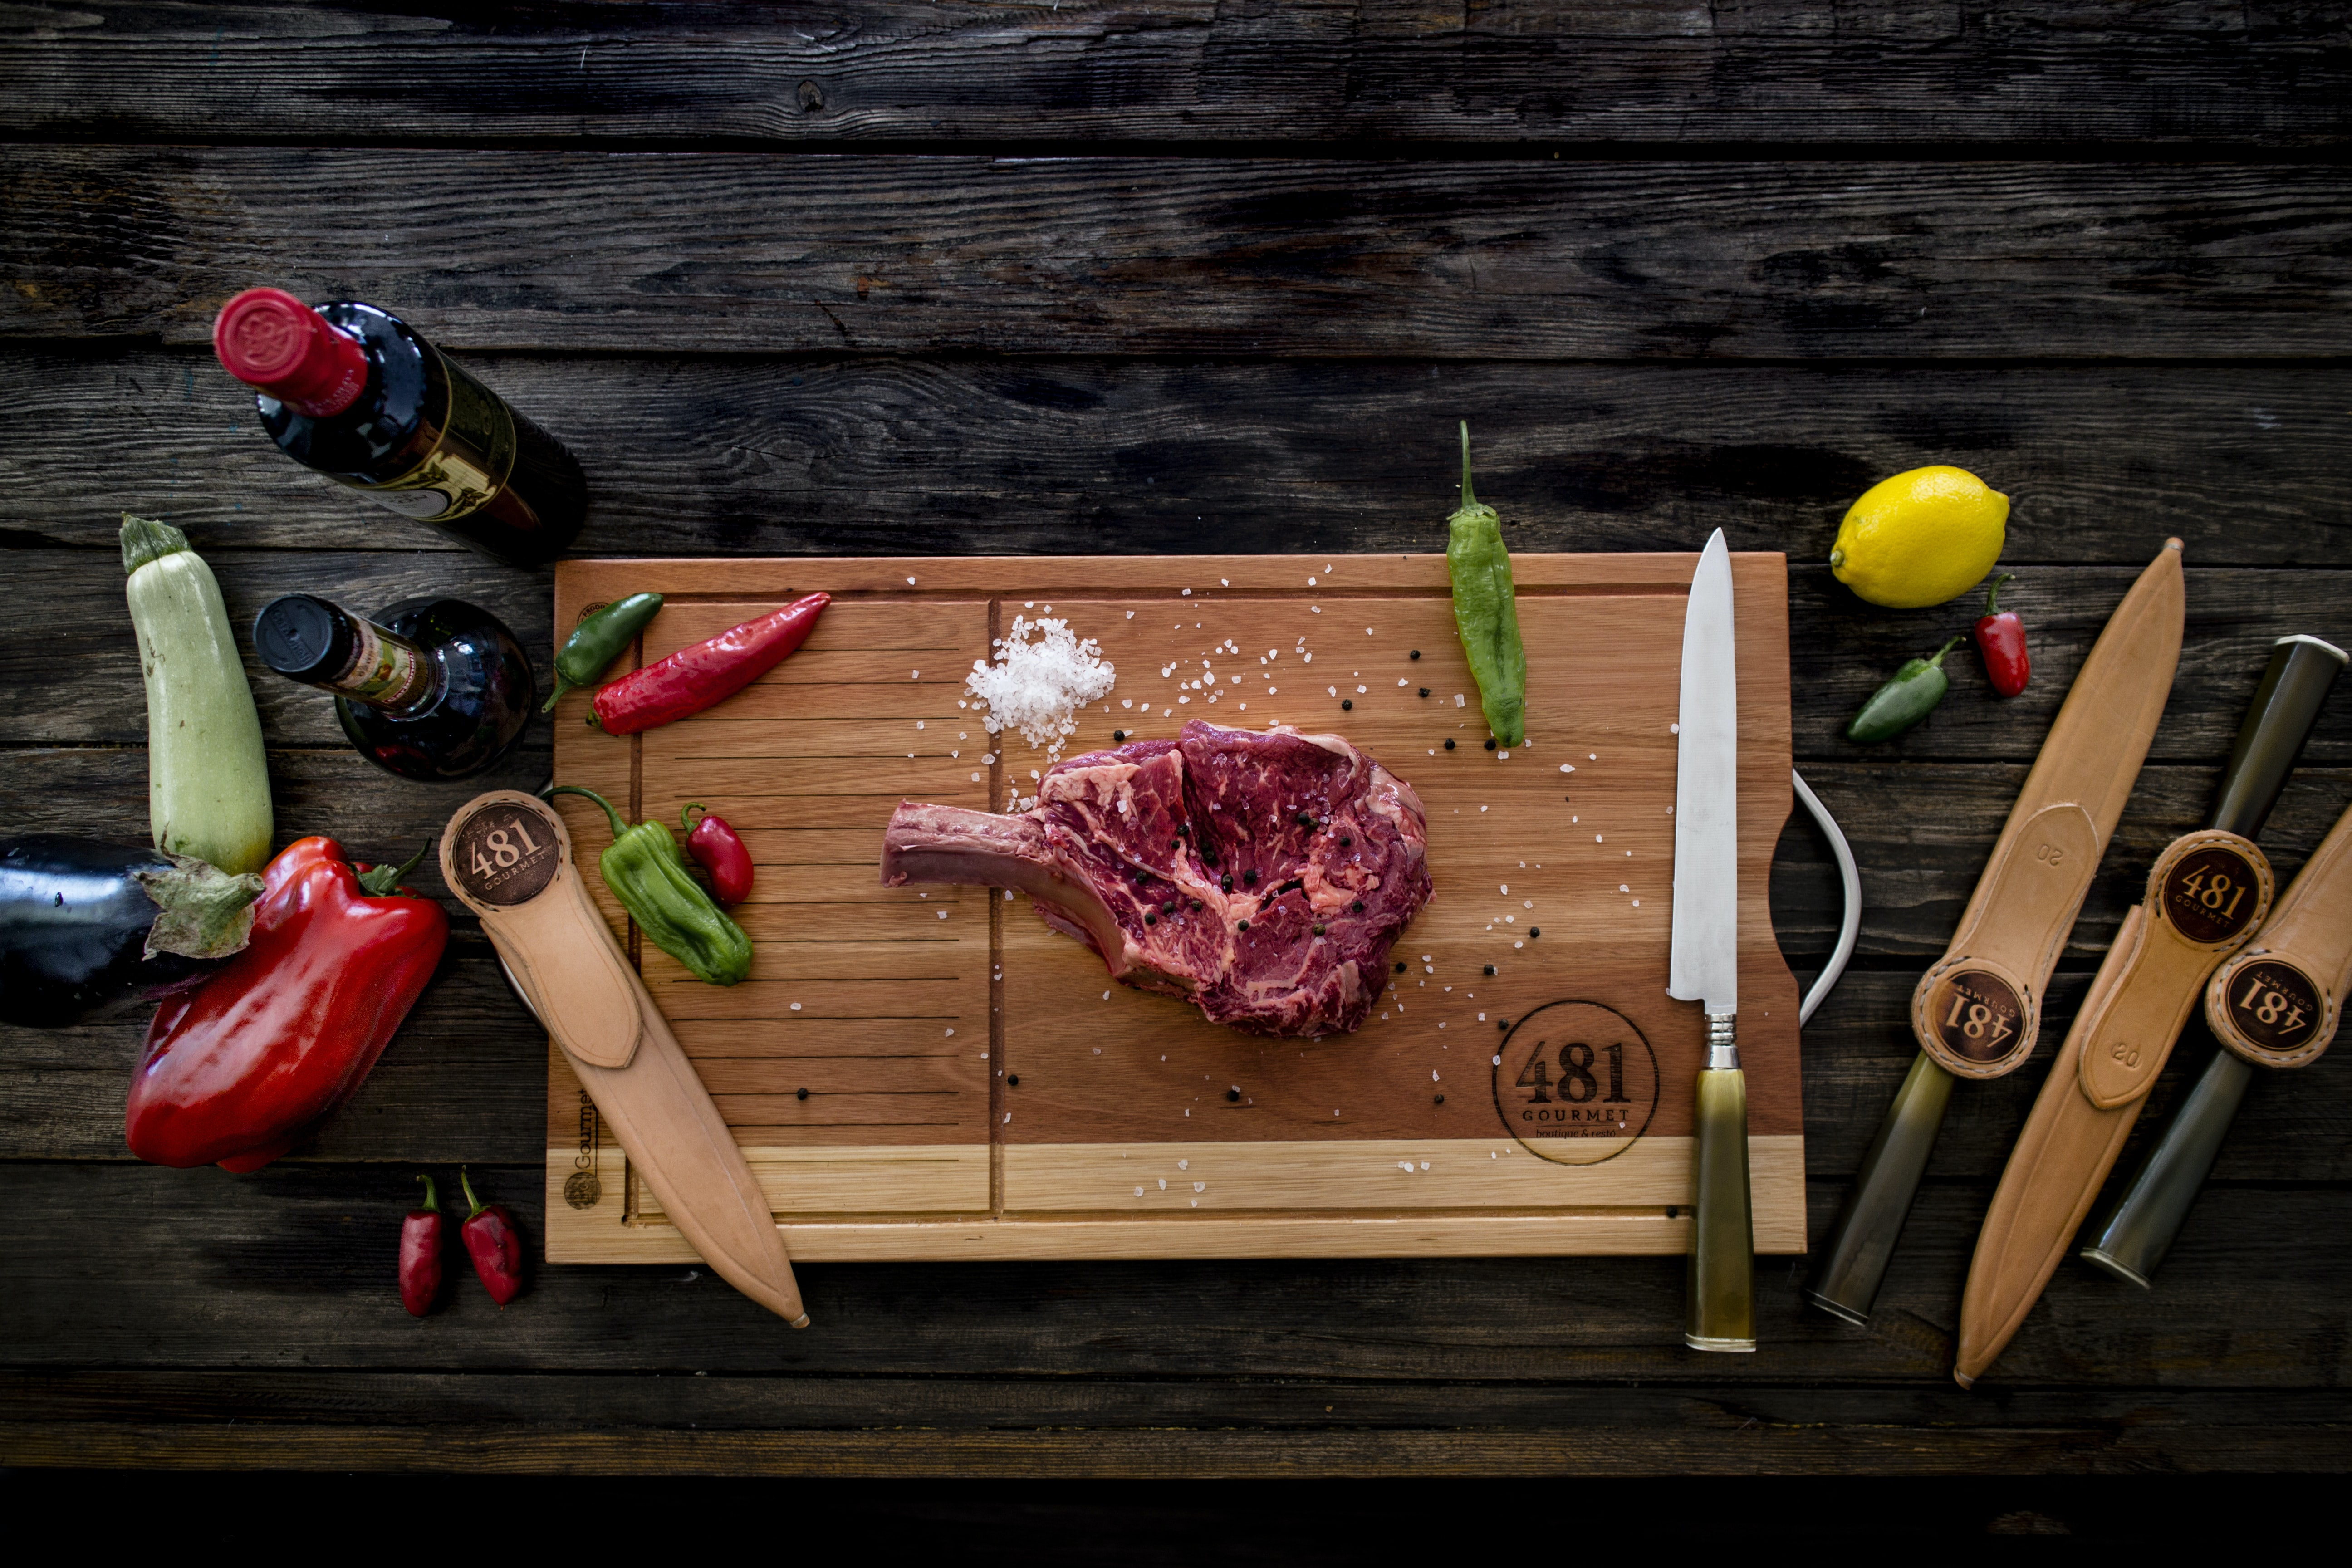 raw meat with spices on chopping board near knives